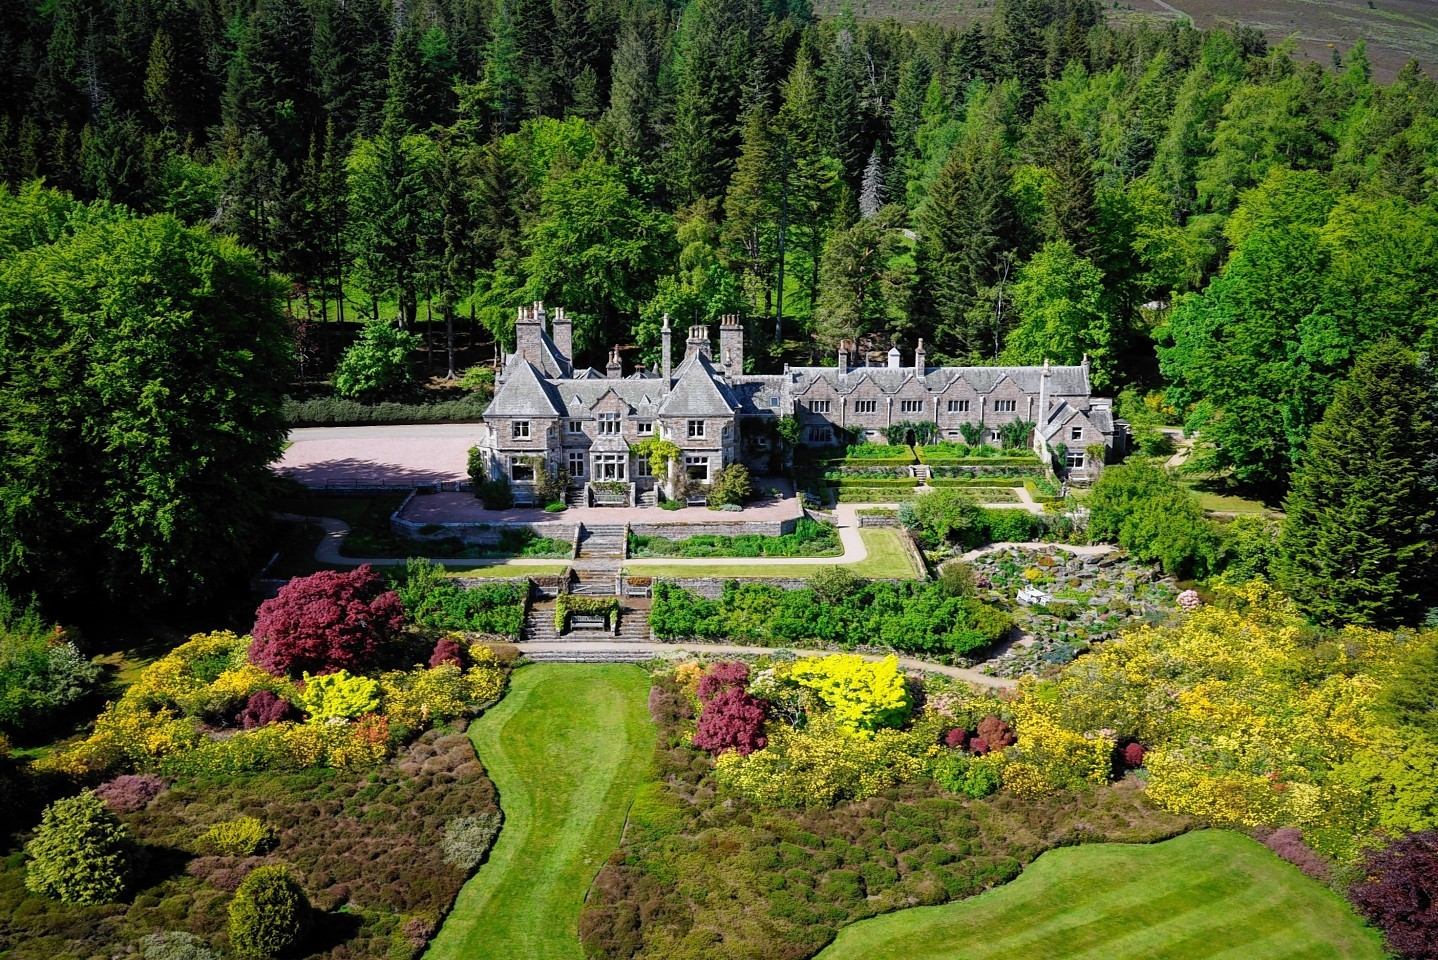 The Tillyponie estate  was on the market at offers over £10million